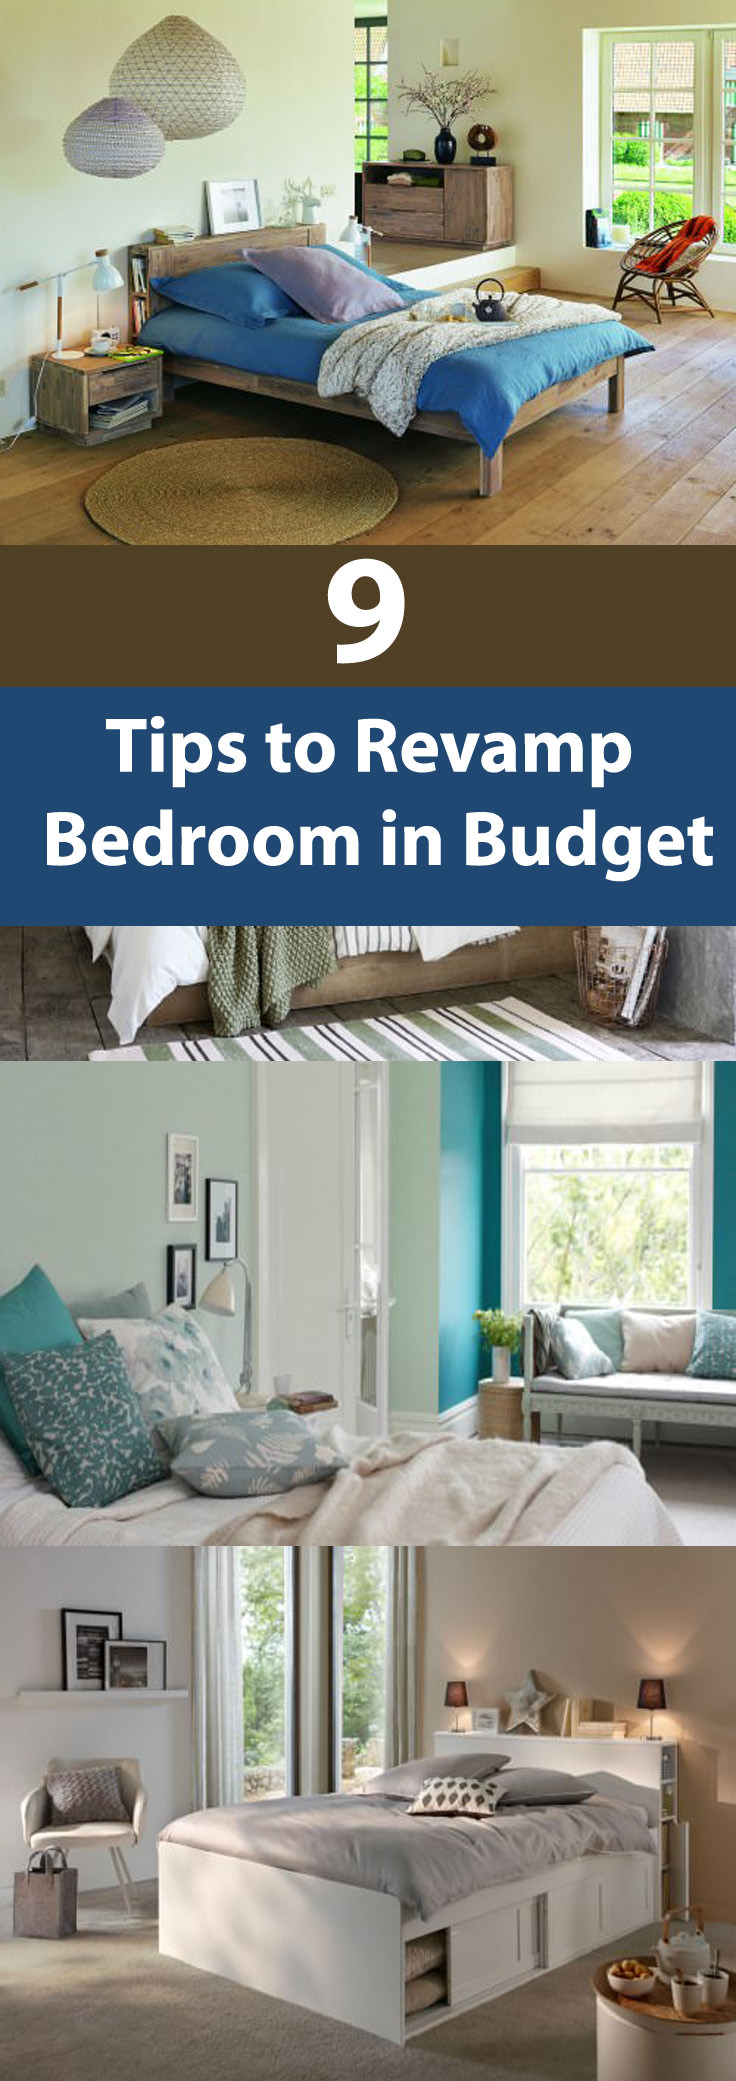 Revamp bedroom in a budget. Follow our 9 tips and give your room a real makeover without losing the weight of your pocket.